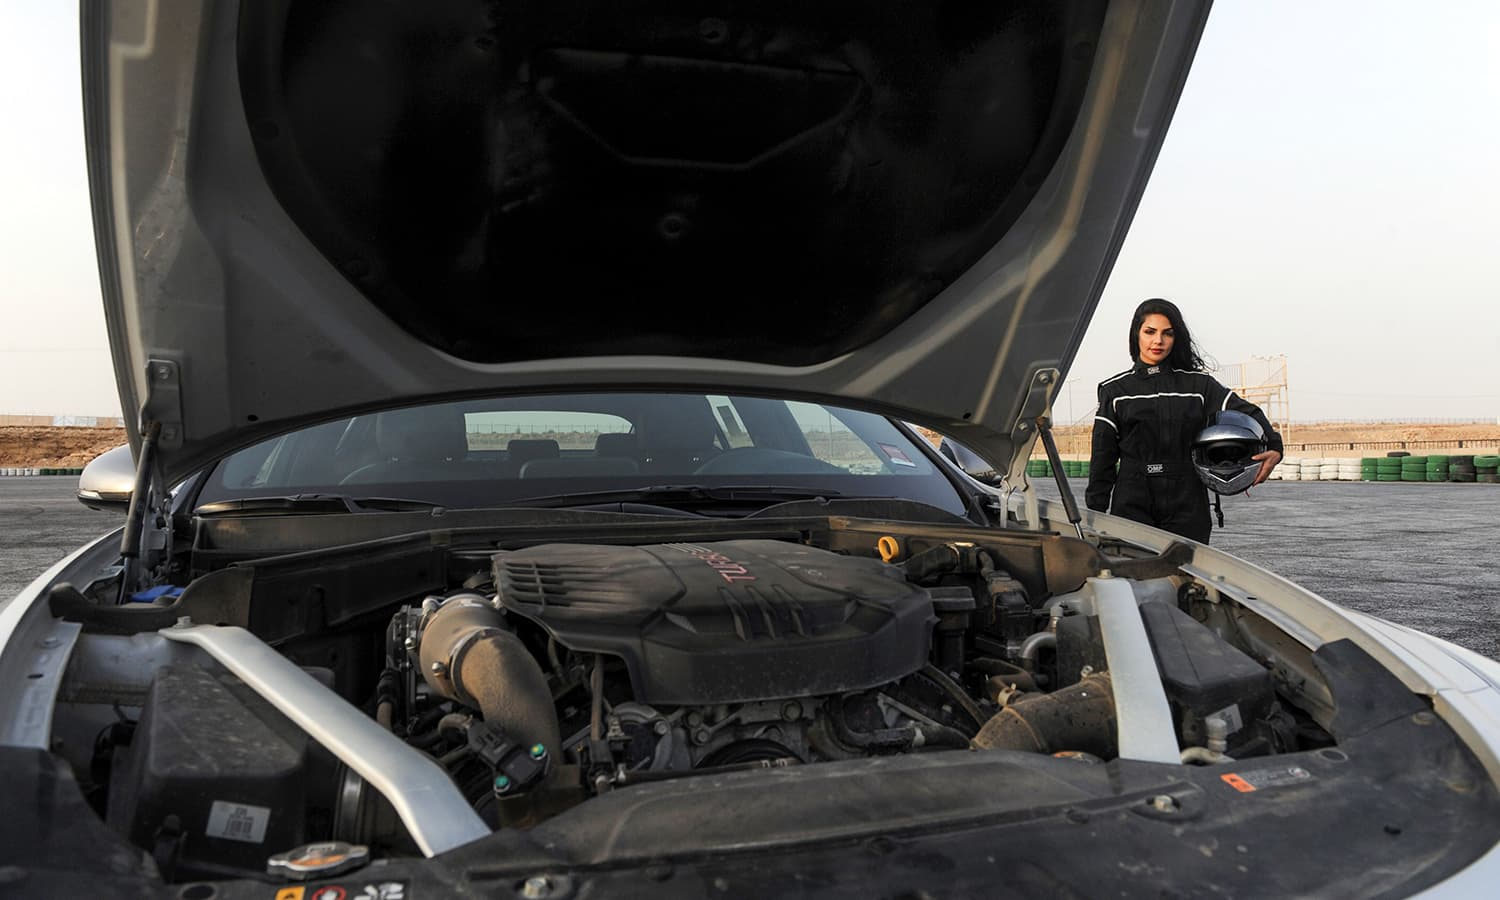 Rana Almimoni poses with her helmet next to her car on the track in Dirab motor park, on the southern outskirts of Riyadh. — AFP